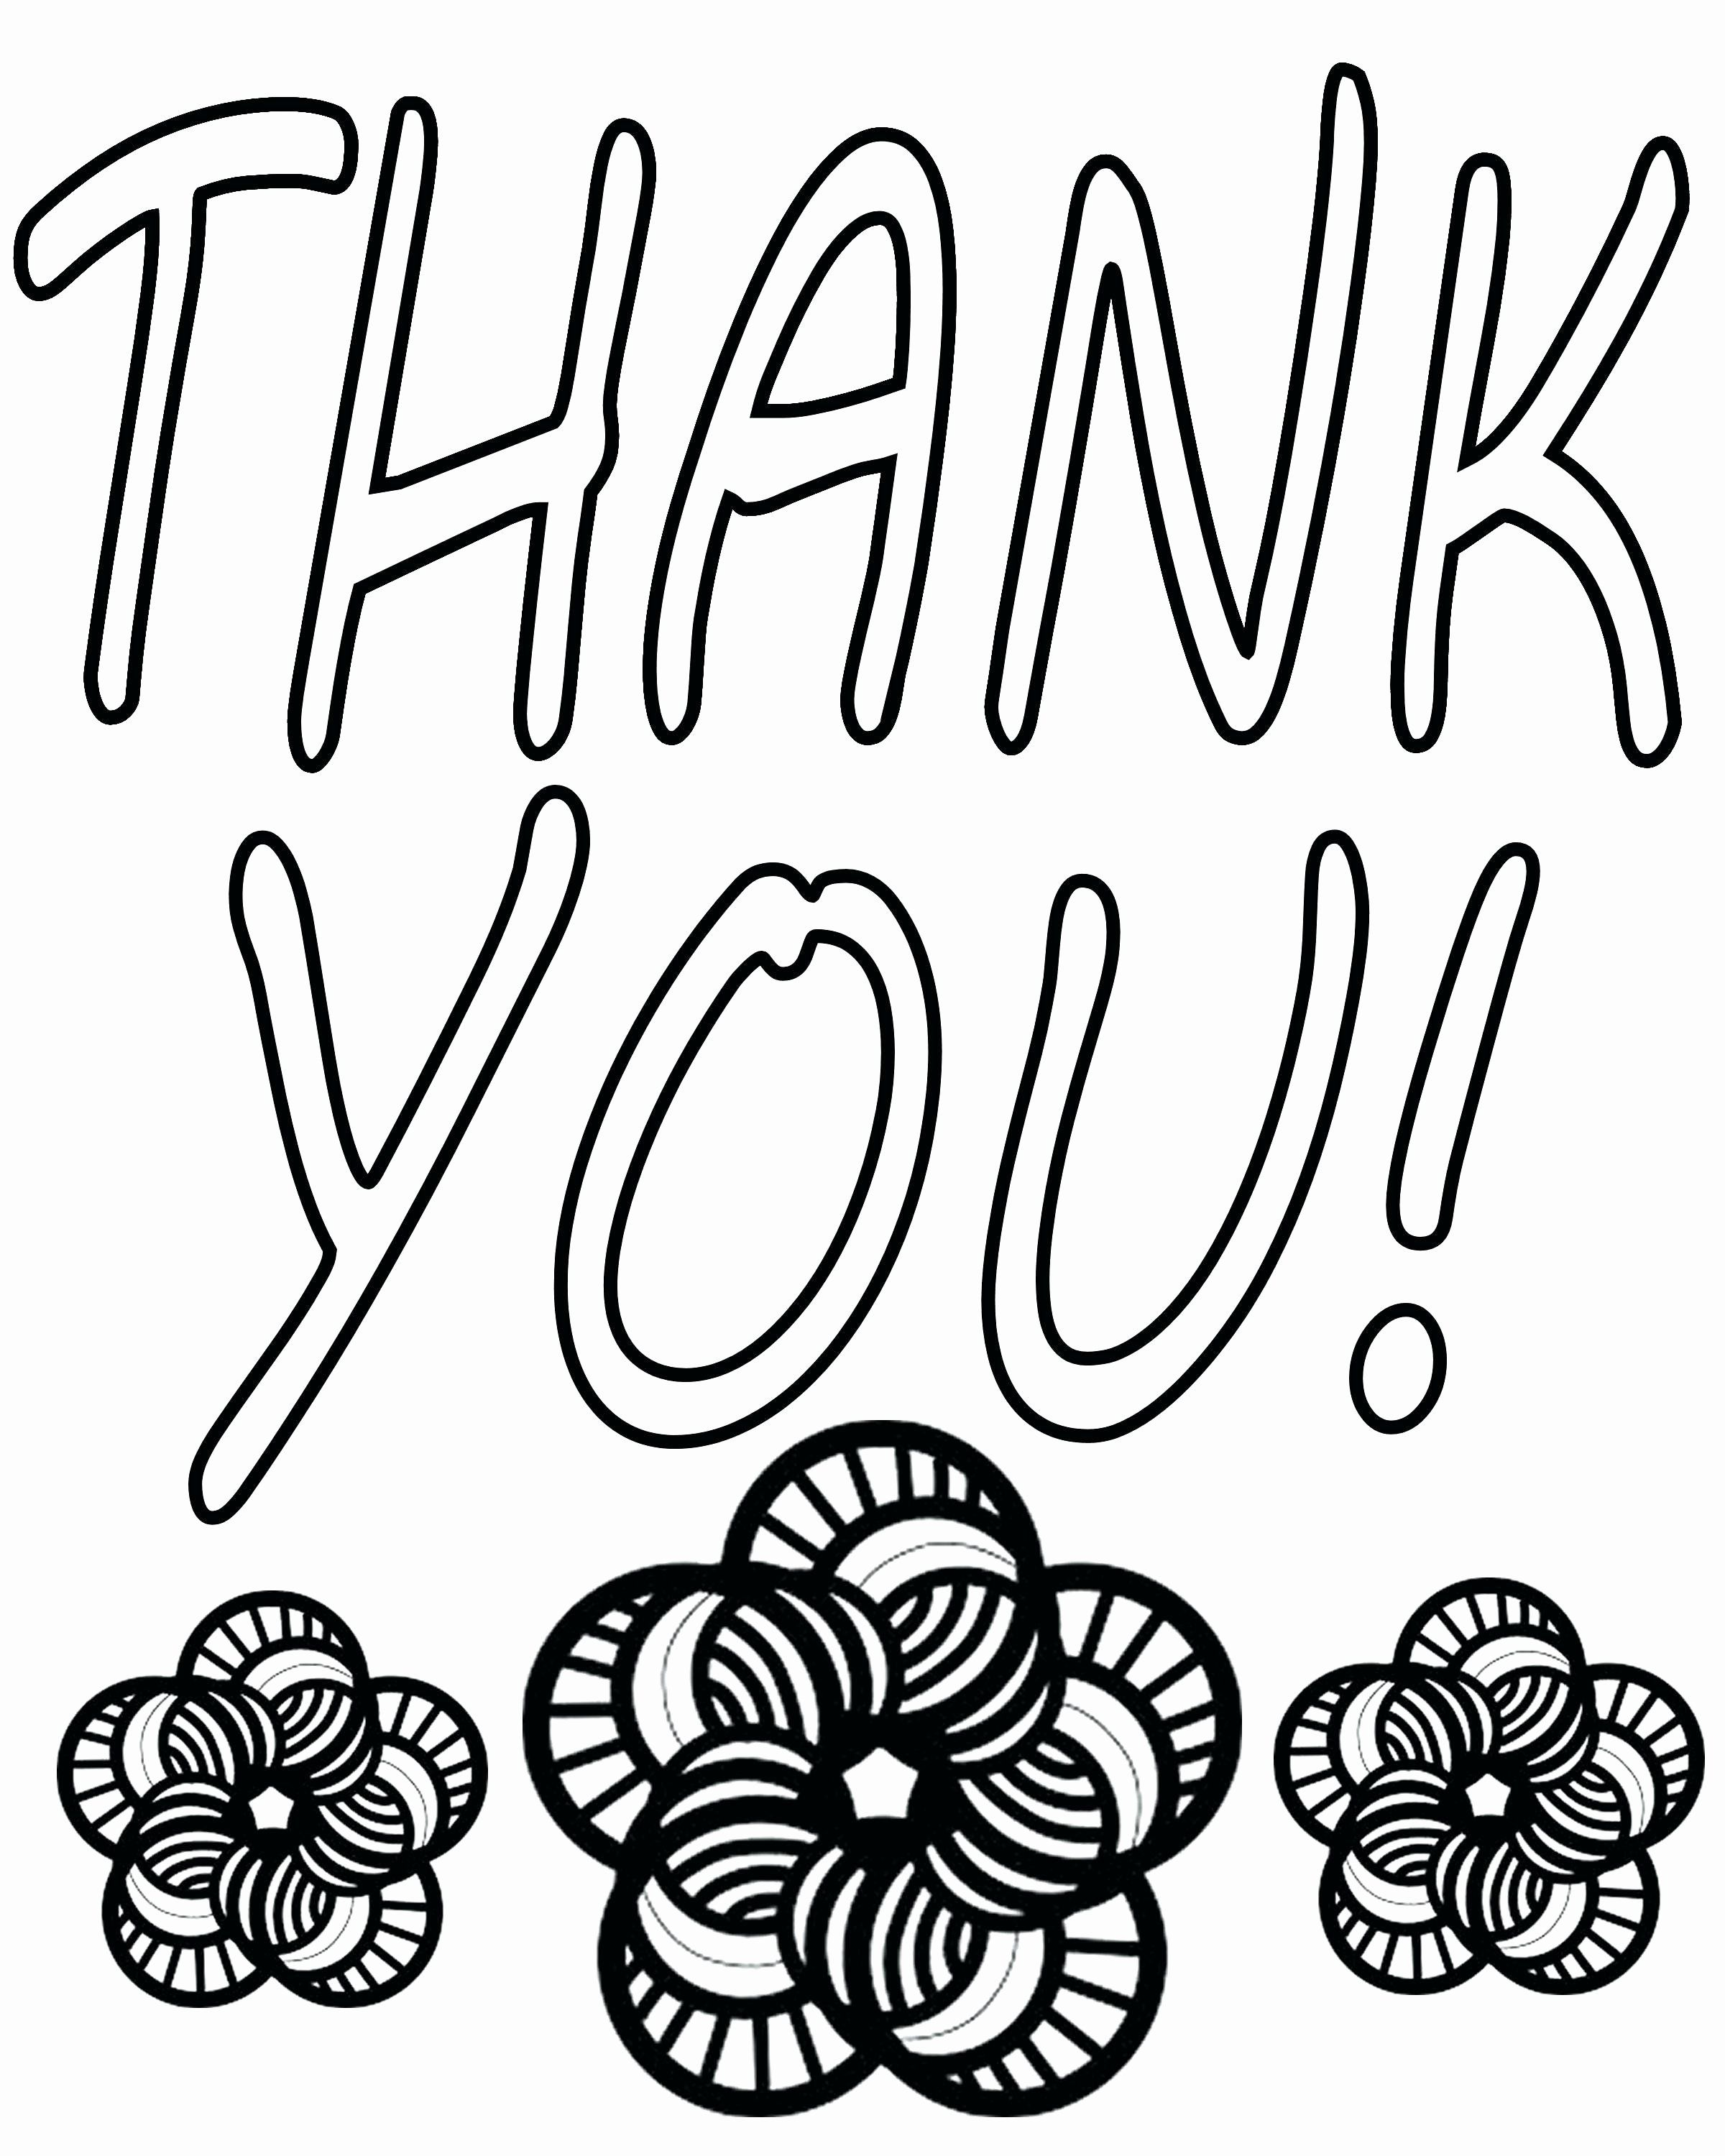 Coloring Thank You Cards Beautiful Thank You Teacher Coloring Cards Eastbaypaper Heart Coloring Pages Coloring Pages For Kids Printable Coloring Pages